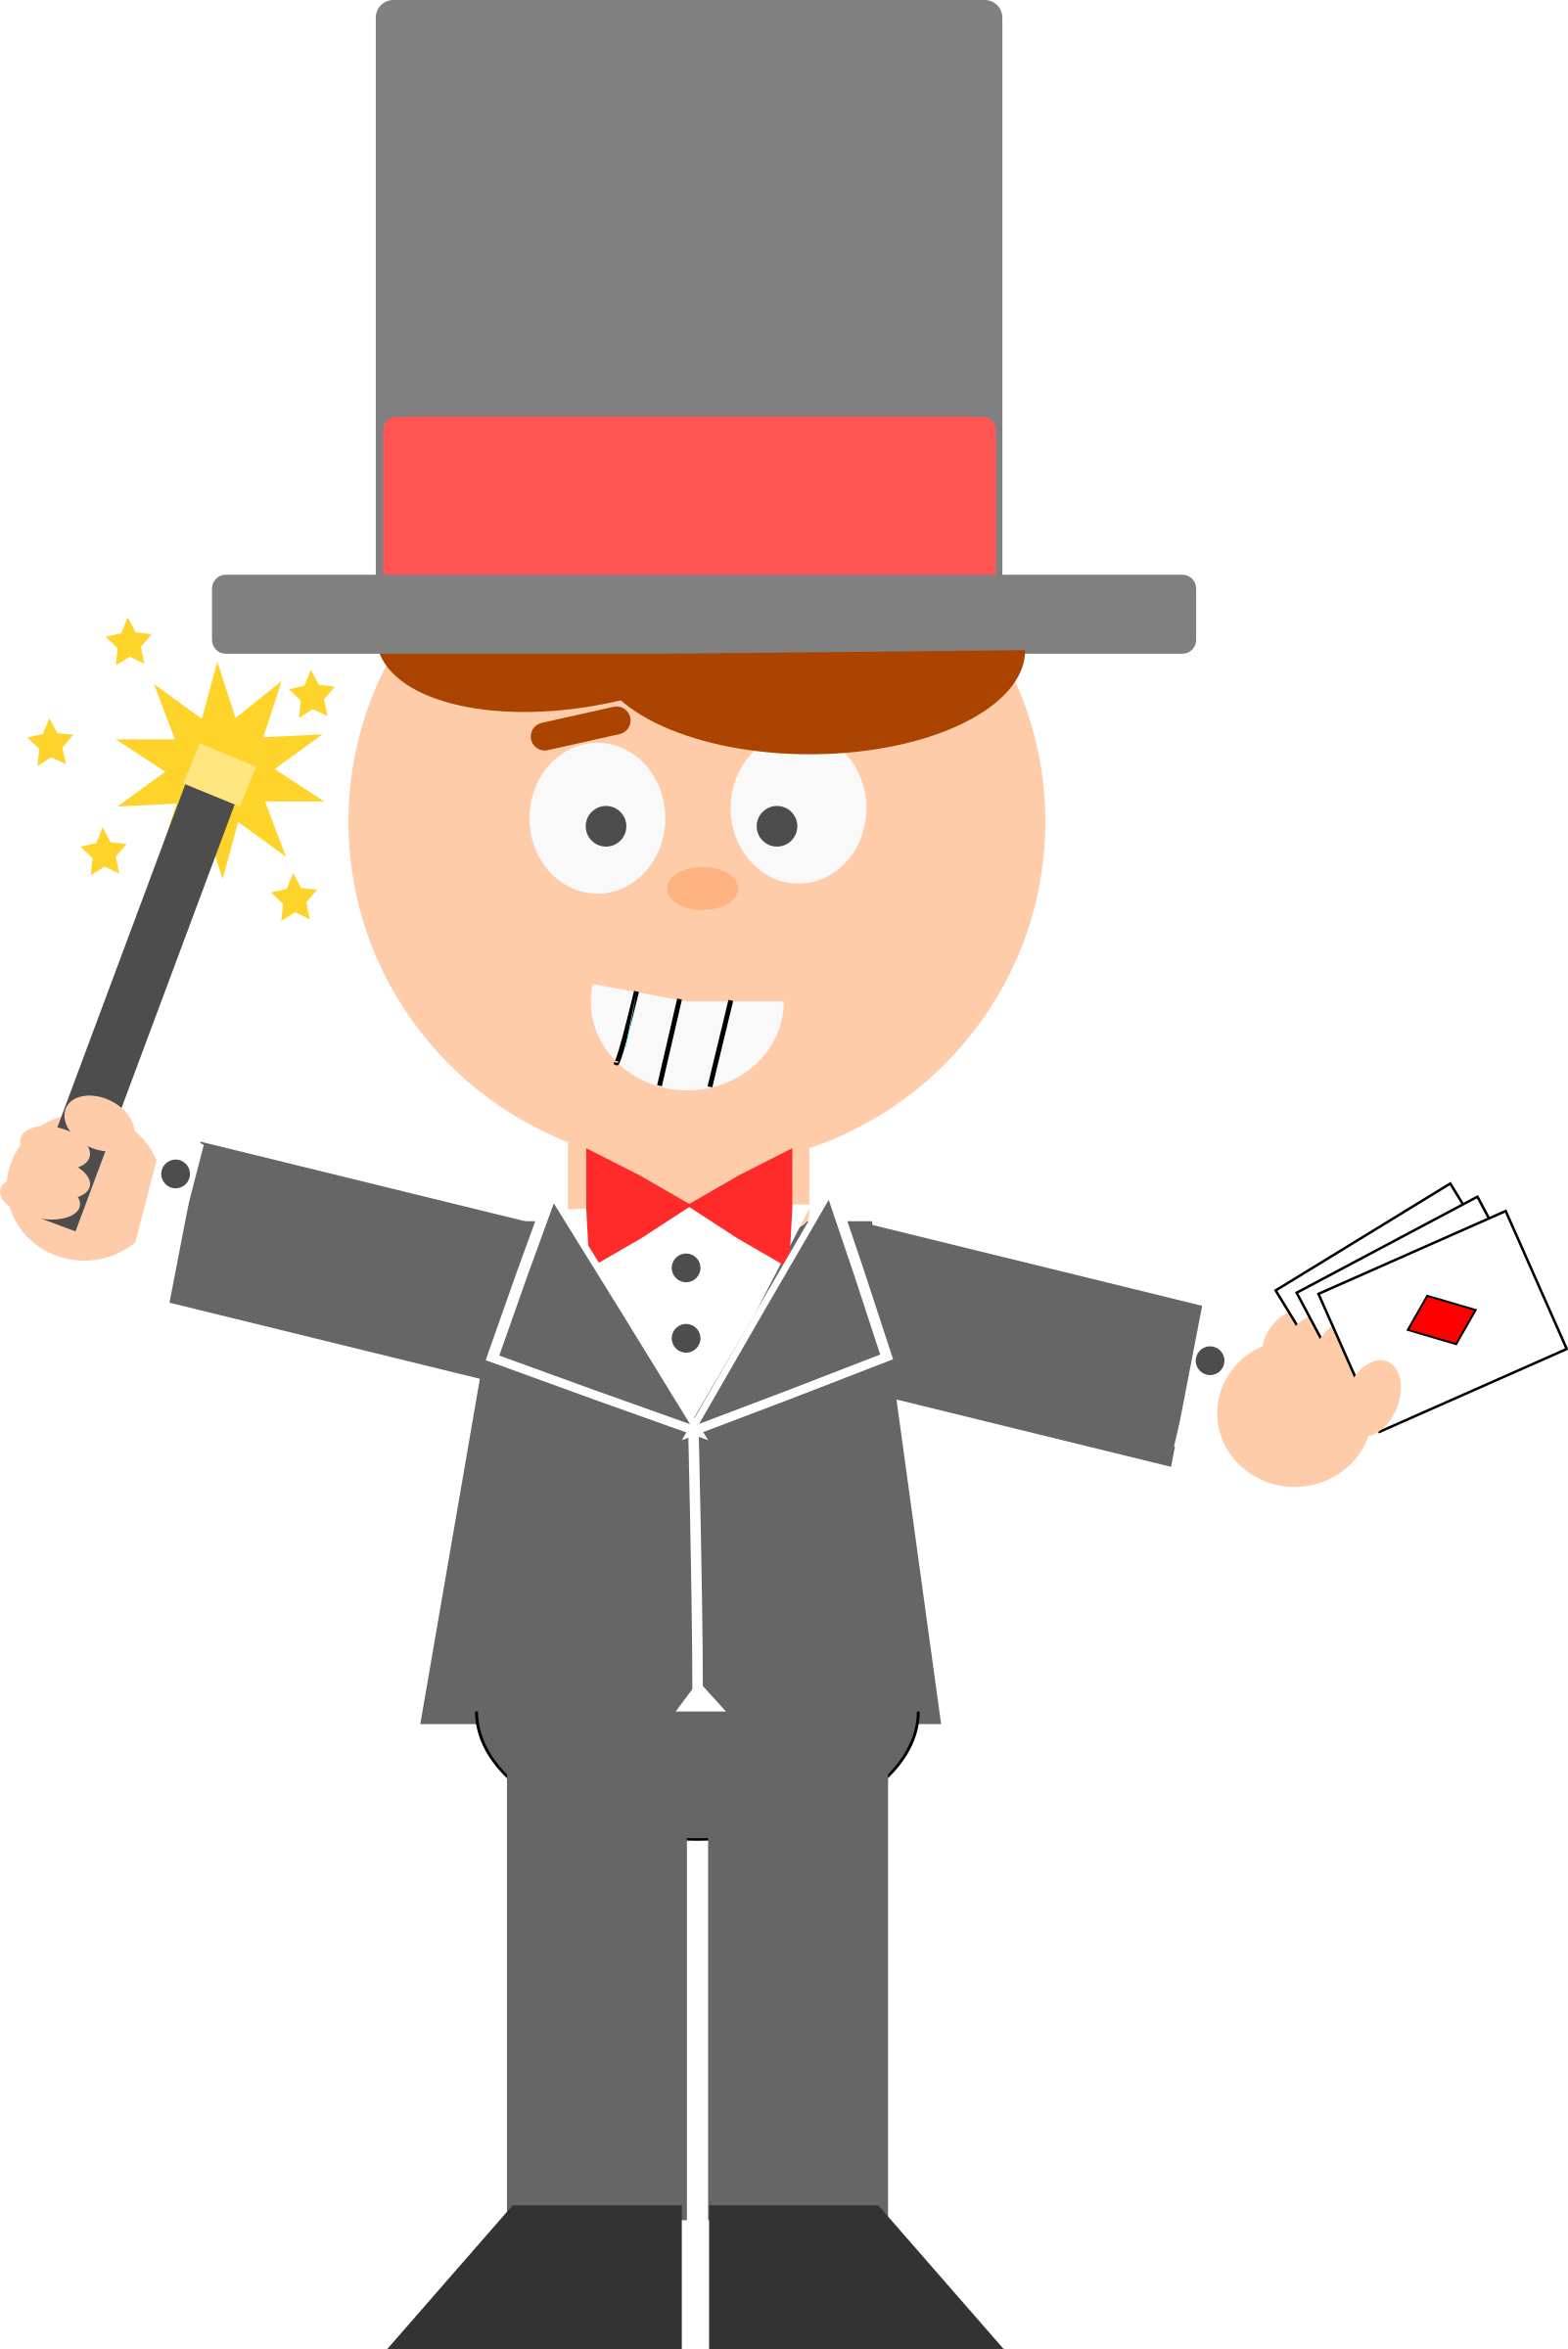 Lady clipart magician. Cartoon icons png free